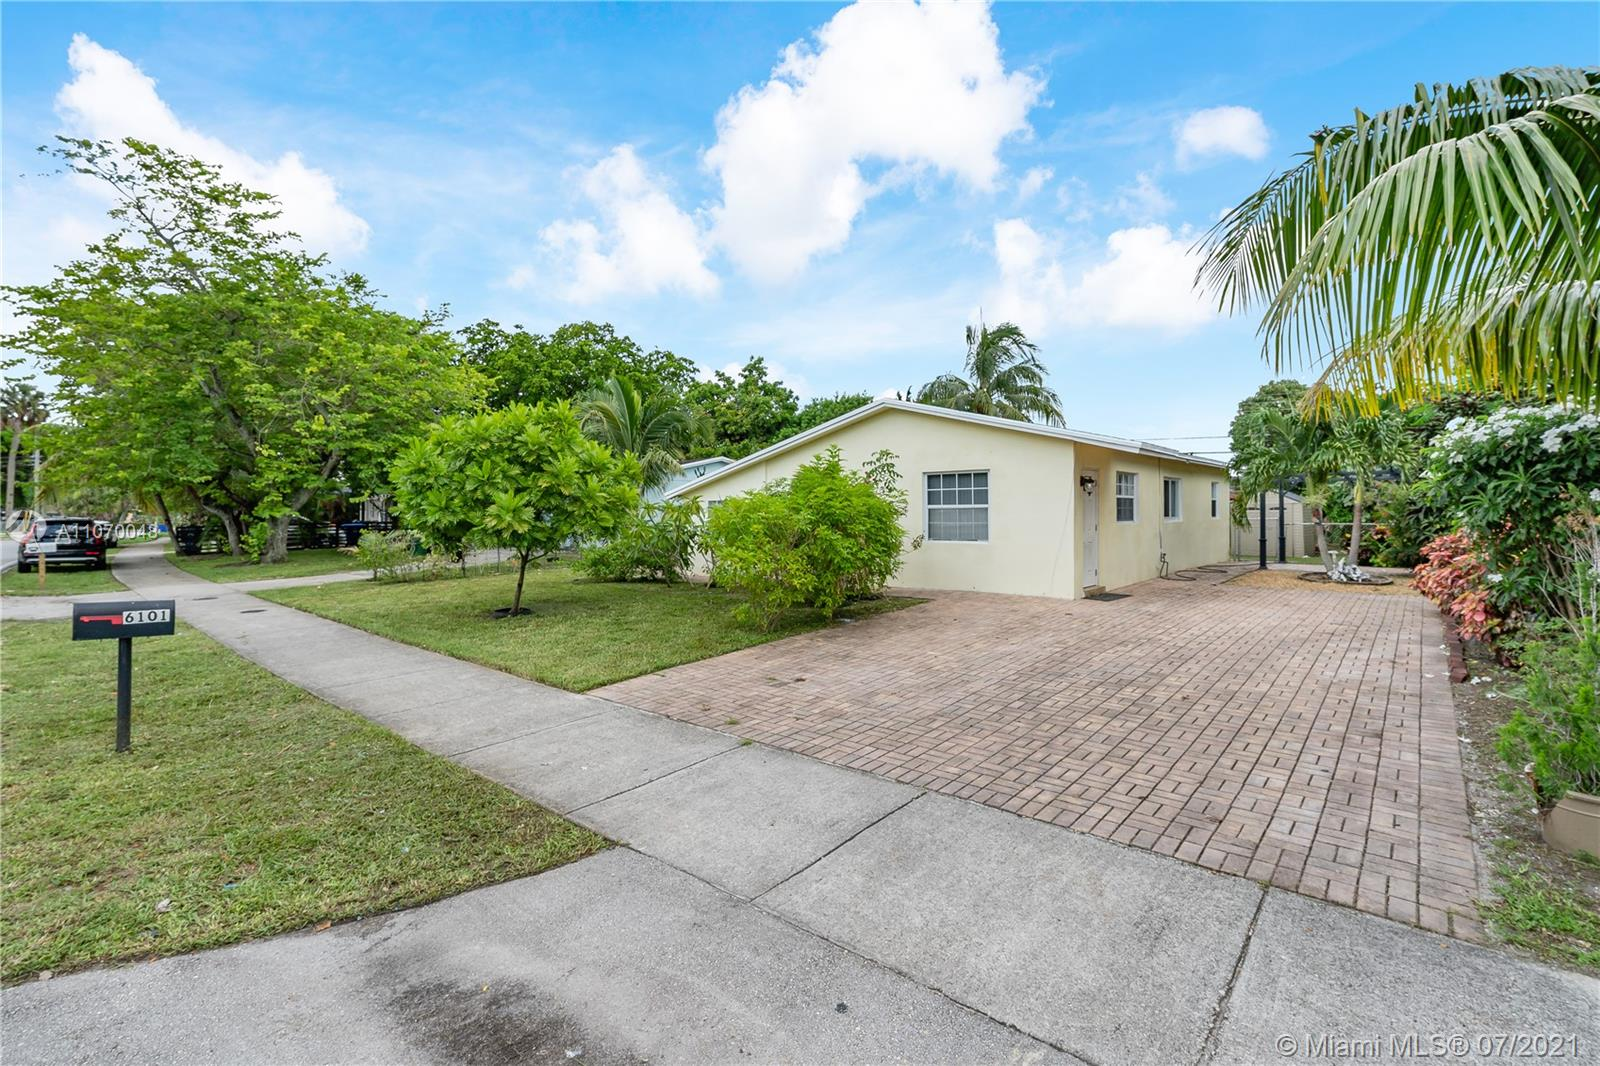 6101 NW 42nd Ave, North Lauderdale, Florida 33319